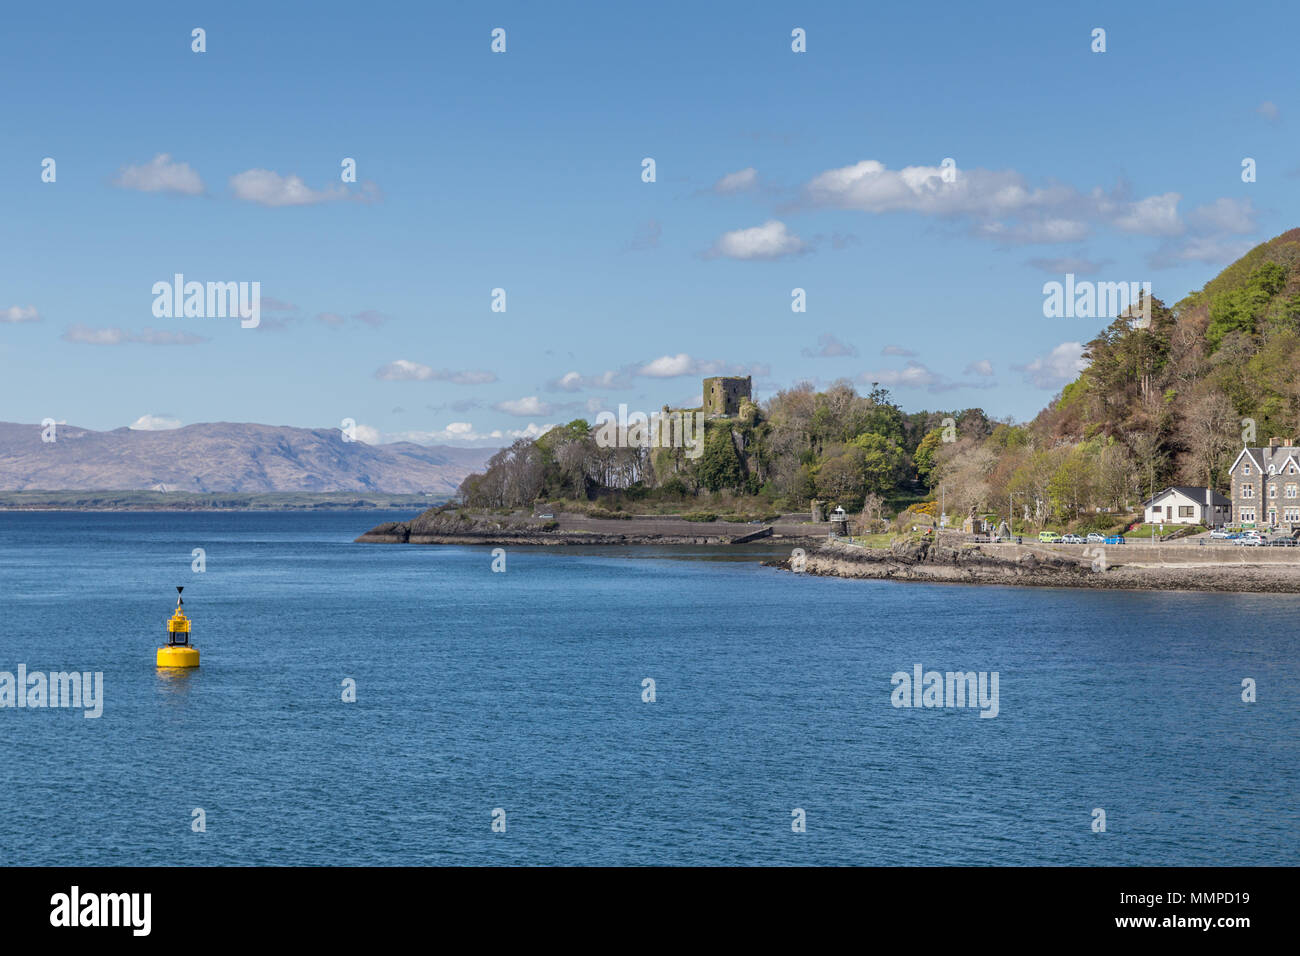 Dunollie Castle, a small ruined castle located on a hill north of the town of Oban in Argyll and Bute, western Scotland and gateway to the Hebrides - Stock Image